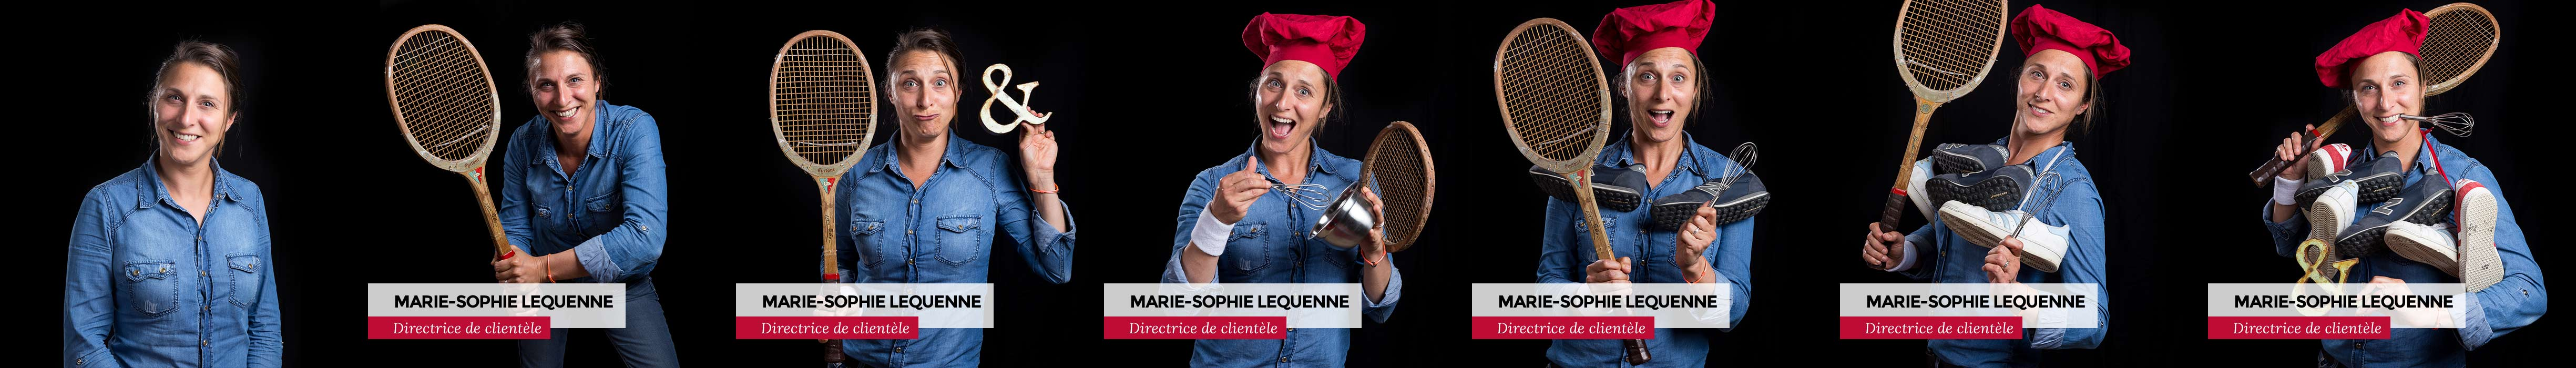 Marie-Sophie Lequenne